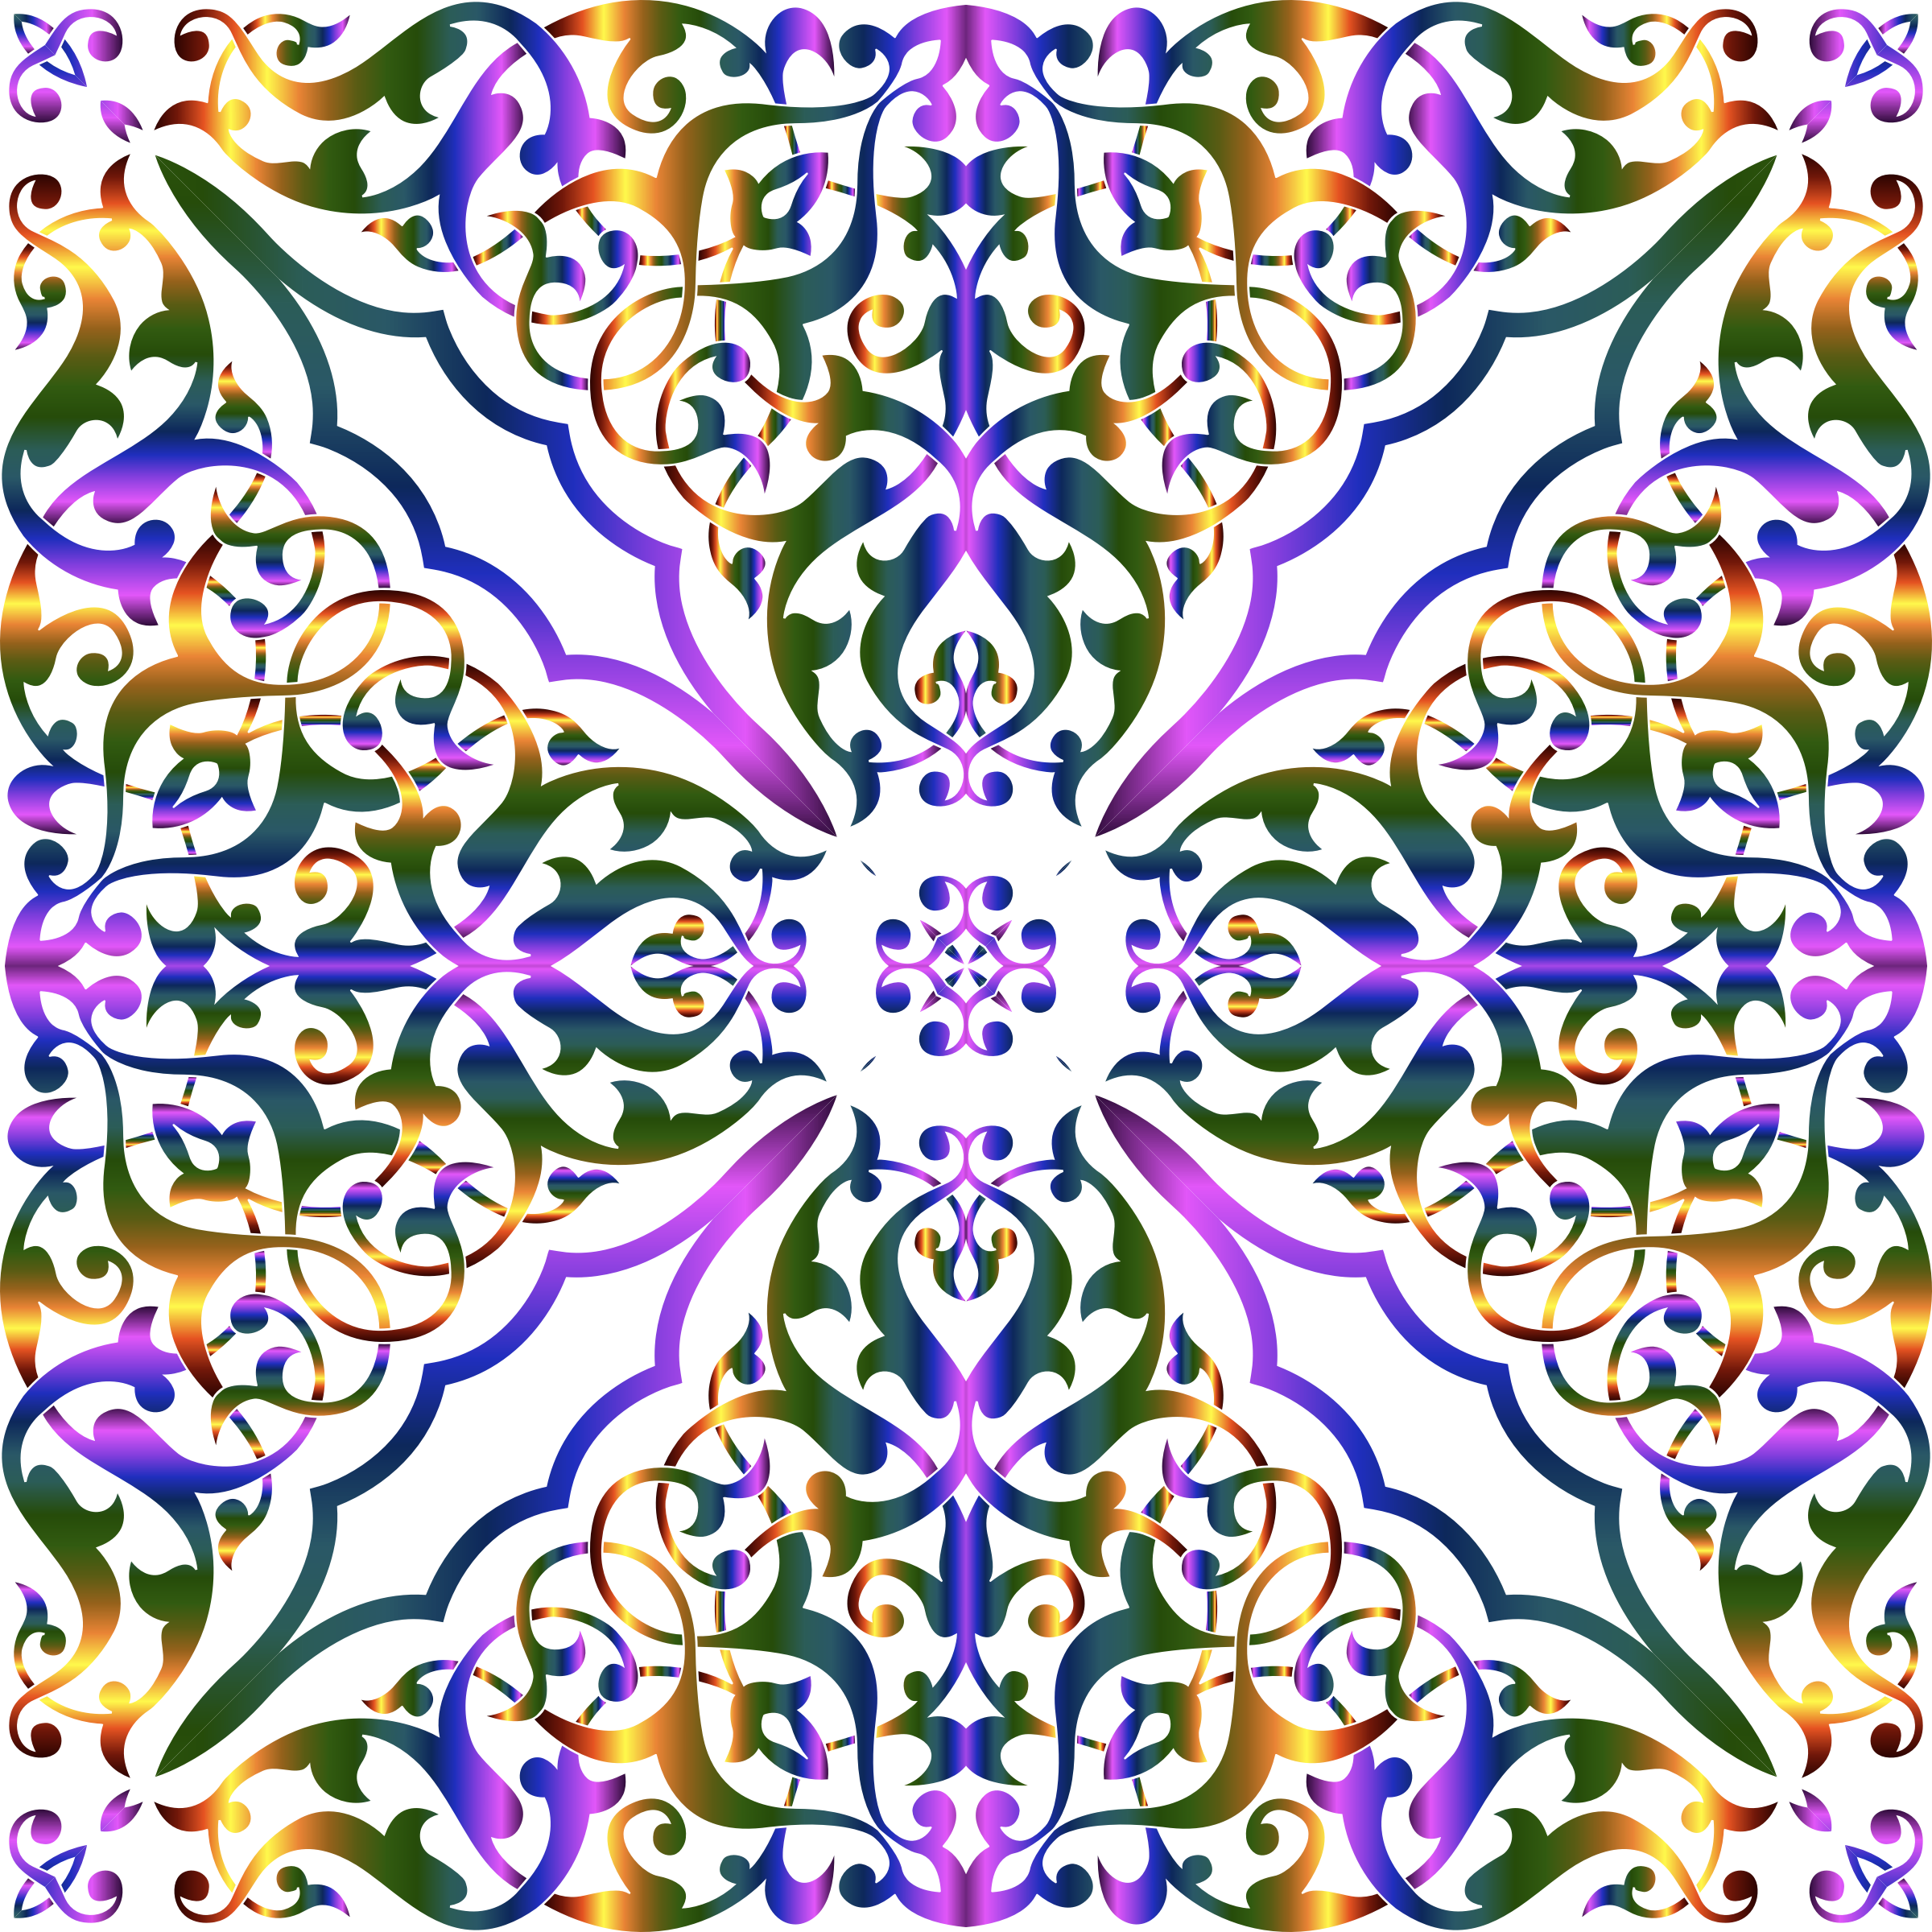 Colorful Design 1 by GDJ